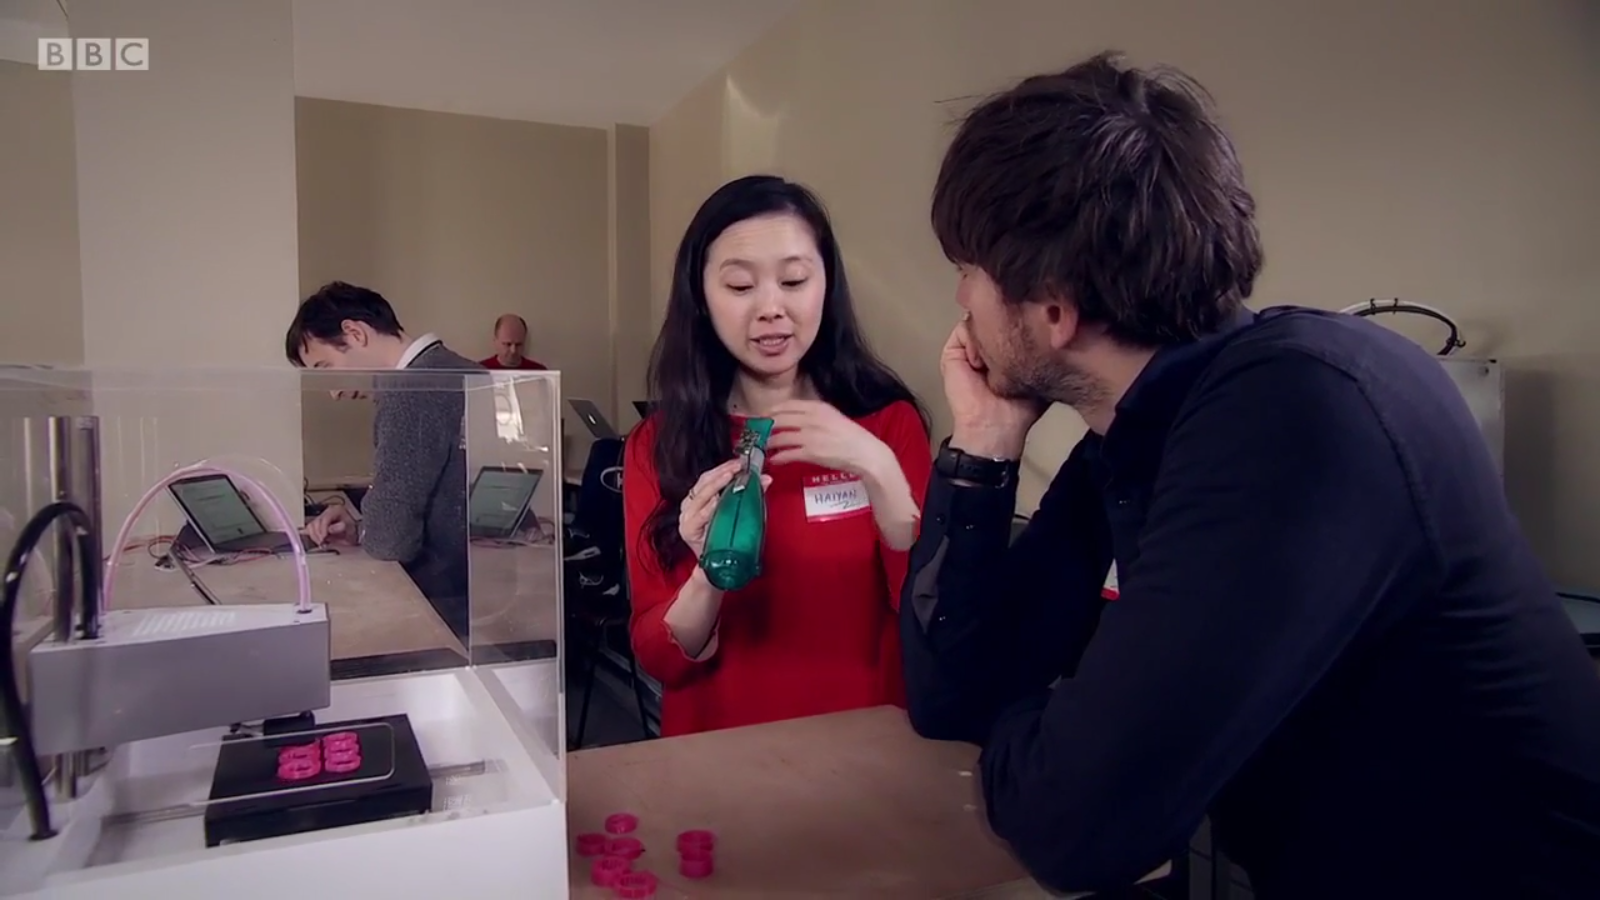 Haiyan Zhang explaining the device to Simon Reeve on 'Big Life Fix'. Image via BBC.